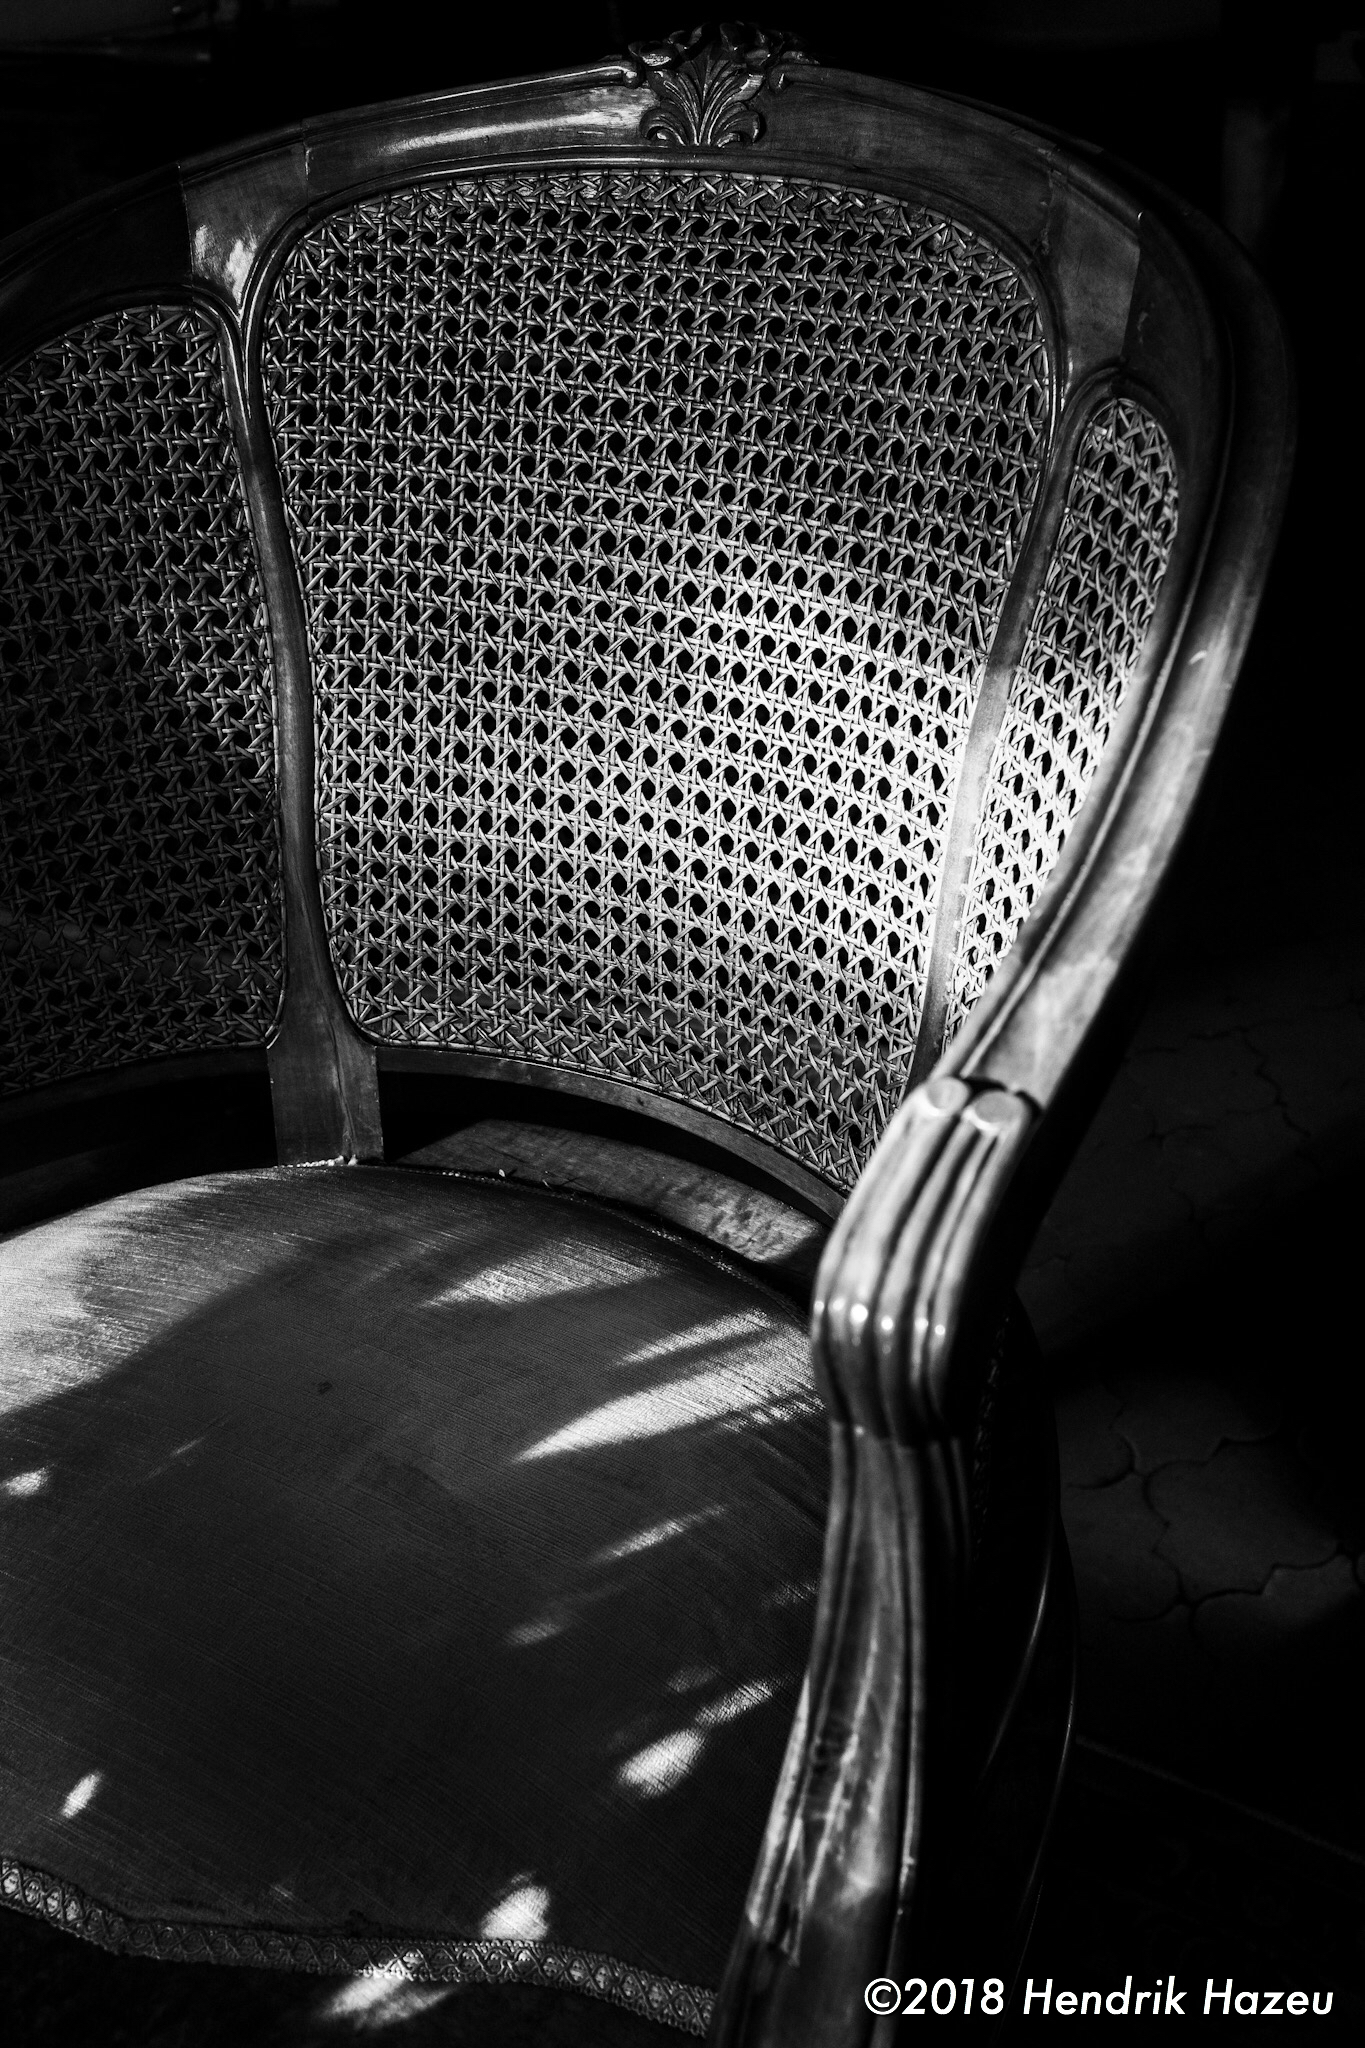 The chair, as seen with Fuji X100F, 23mm @f/5.6, 1/100sec, ISO400